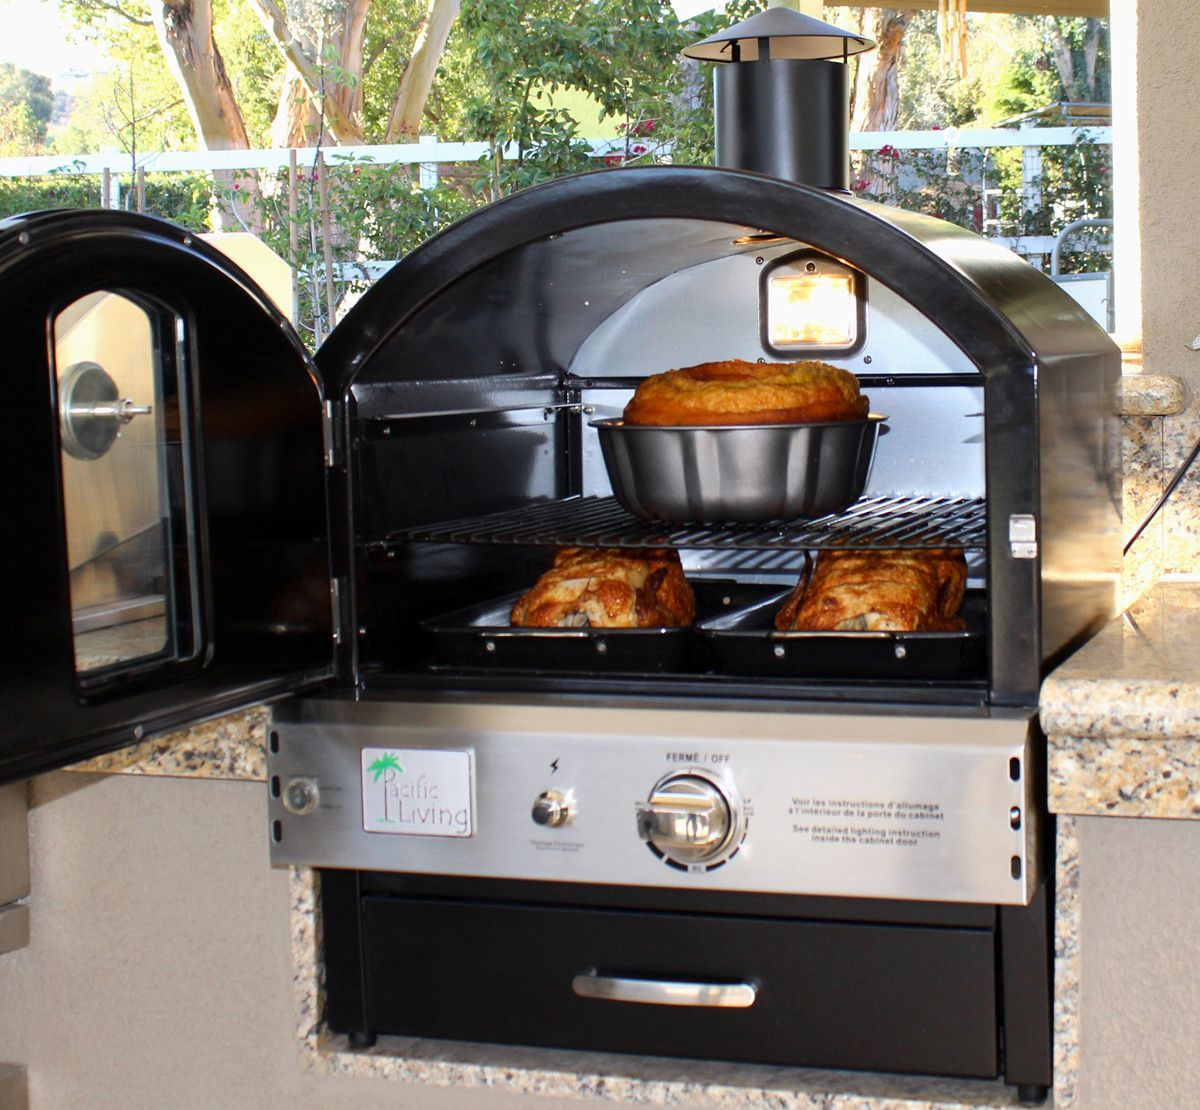 Merveilleux Pacific Living Outdoor Counter Gas Pizza Oven PL8BLK